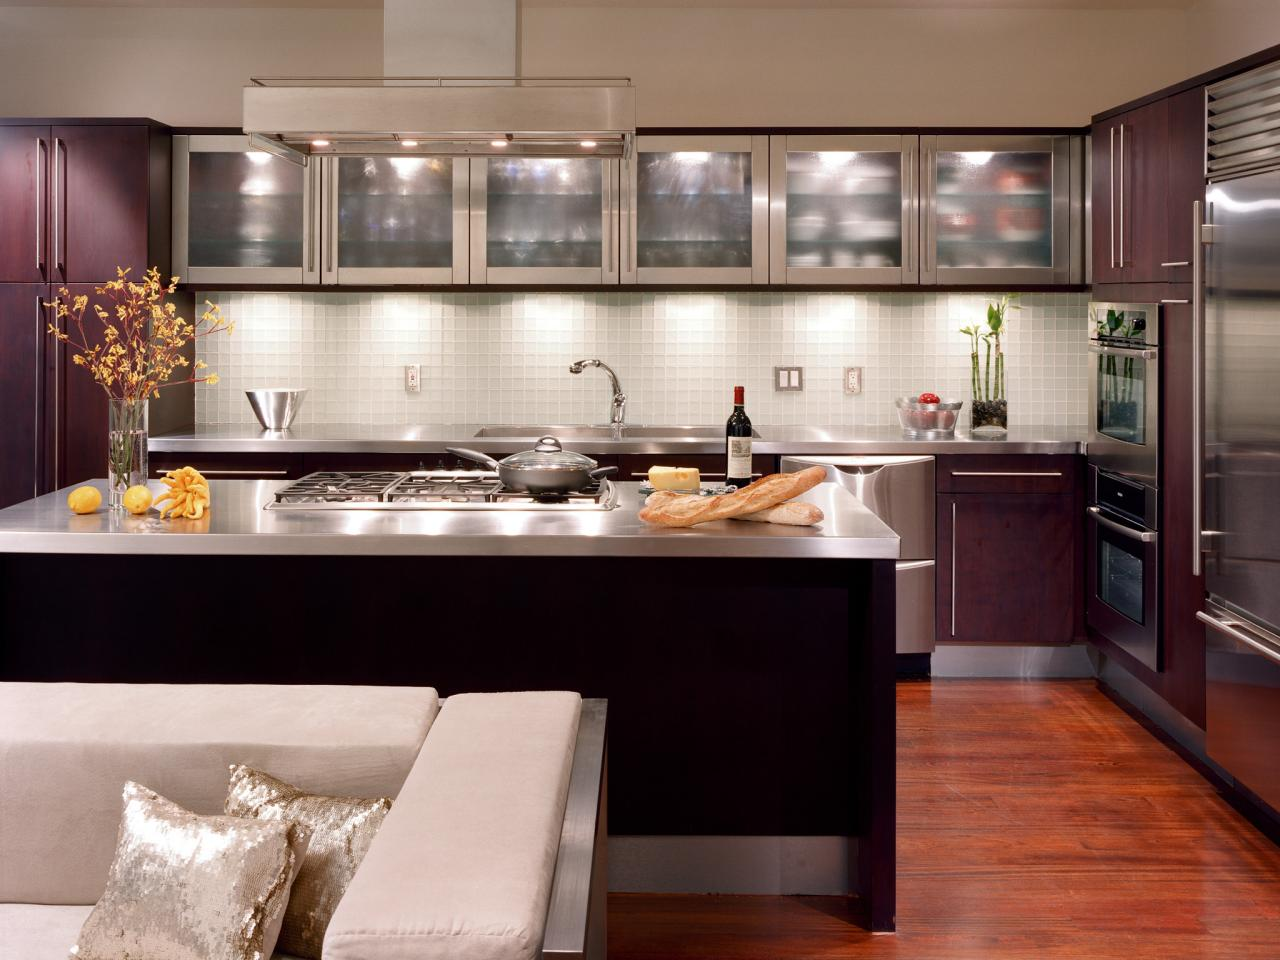 Increase the brightness of your kitchen